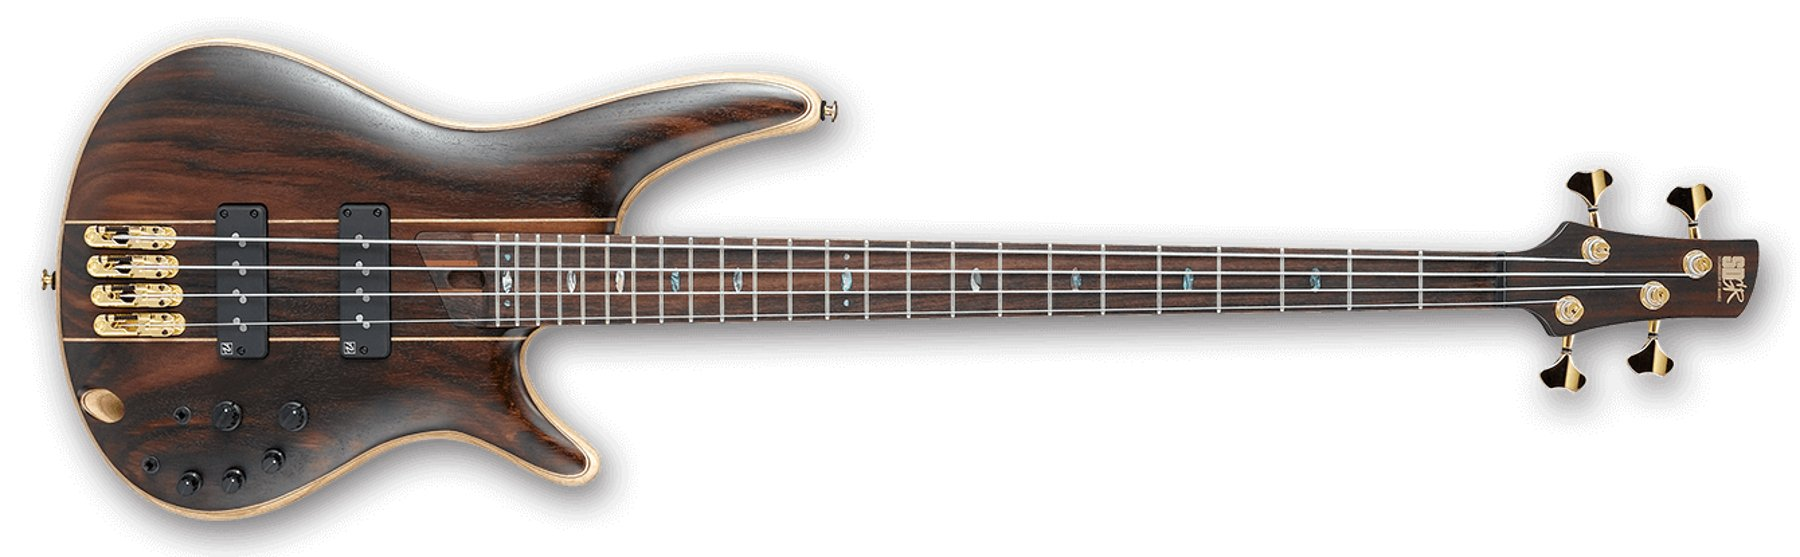 4-String Premium Series Bass Guitar, Natural Low Gloss Finish